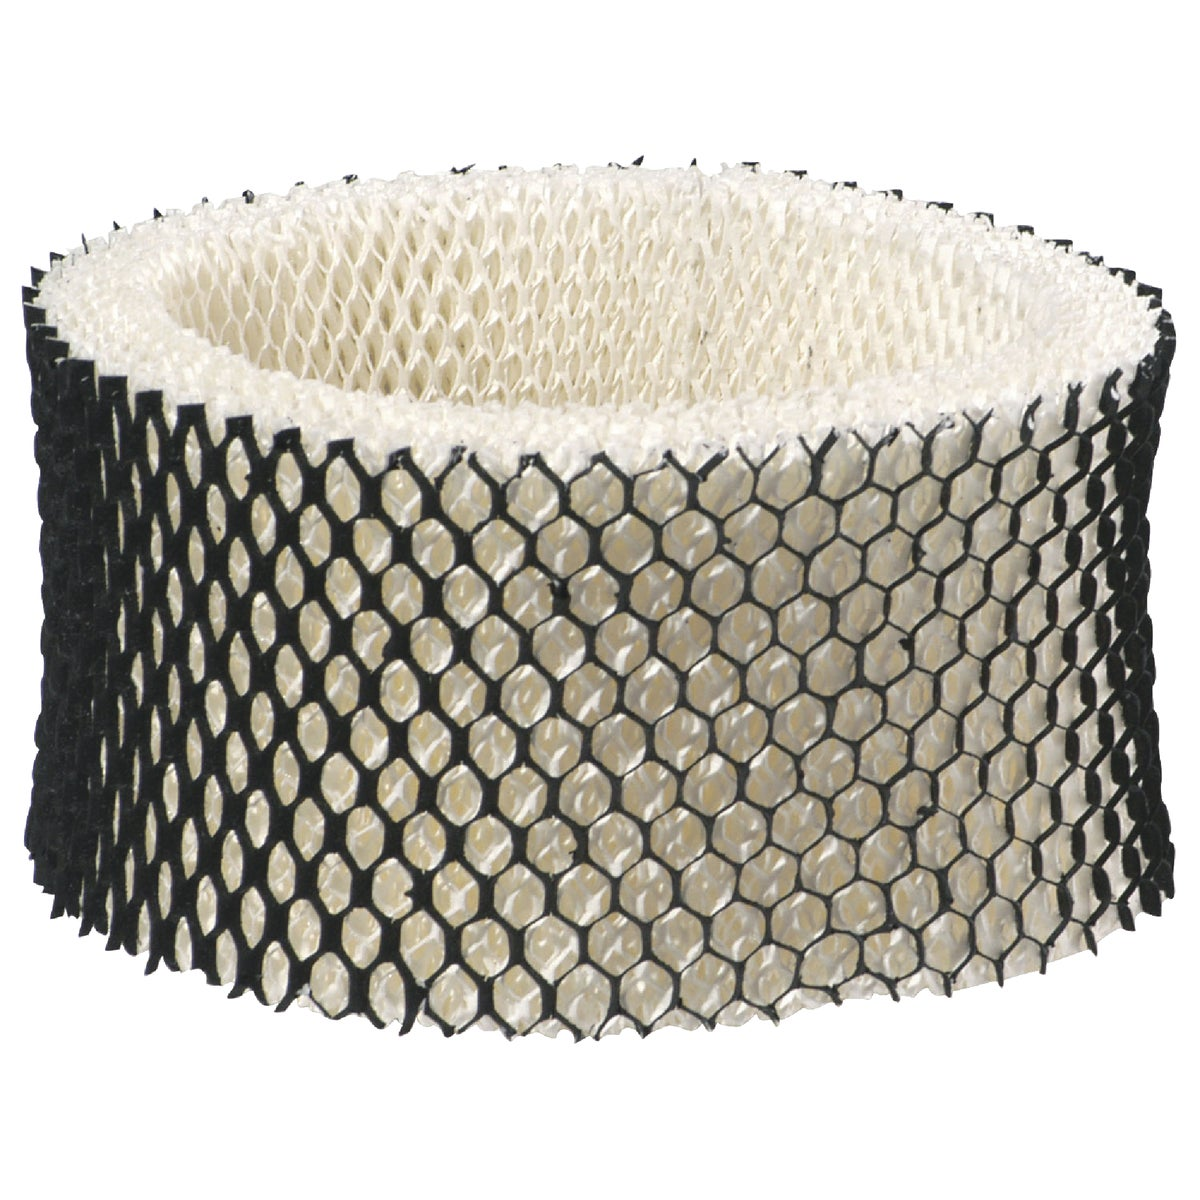 HUMIDIFIER WICK FILTER - HWF62PDQU by Holmes Jarden